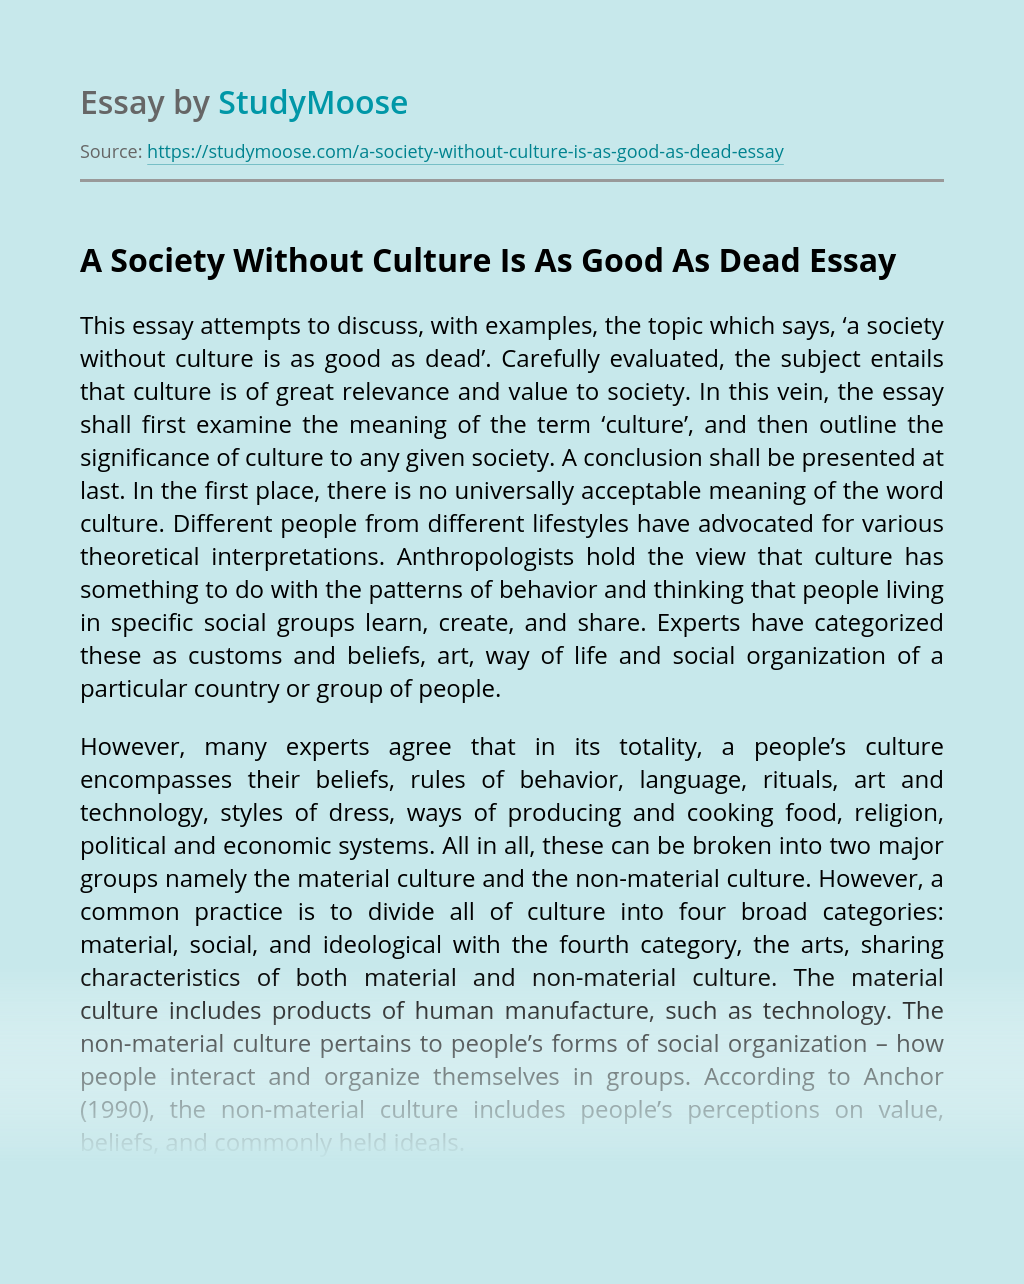 A Society Without Culture Is As Good As Dead